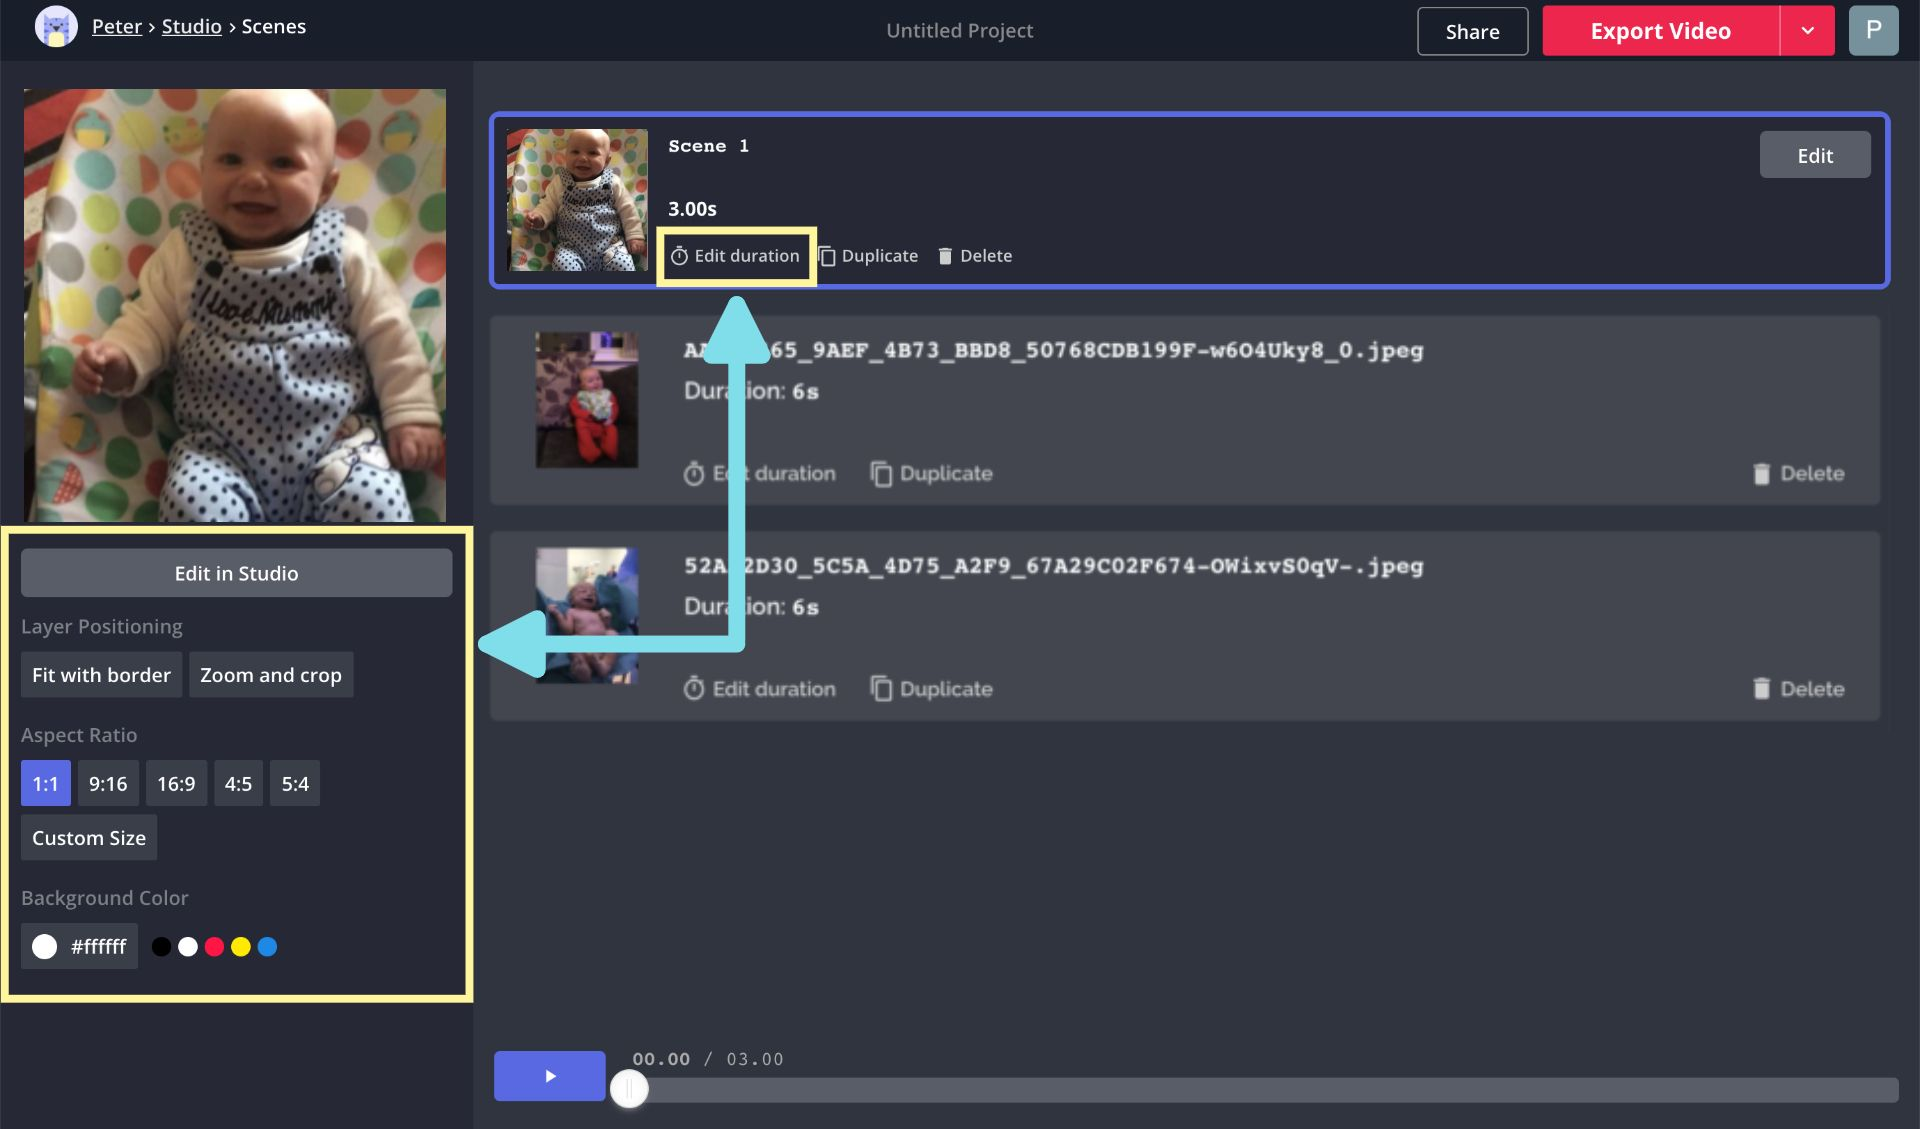 A screenshot showing how to edit the details of a montage video in Kapwing.